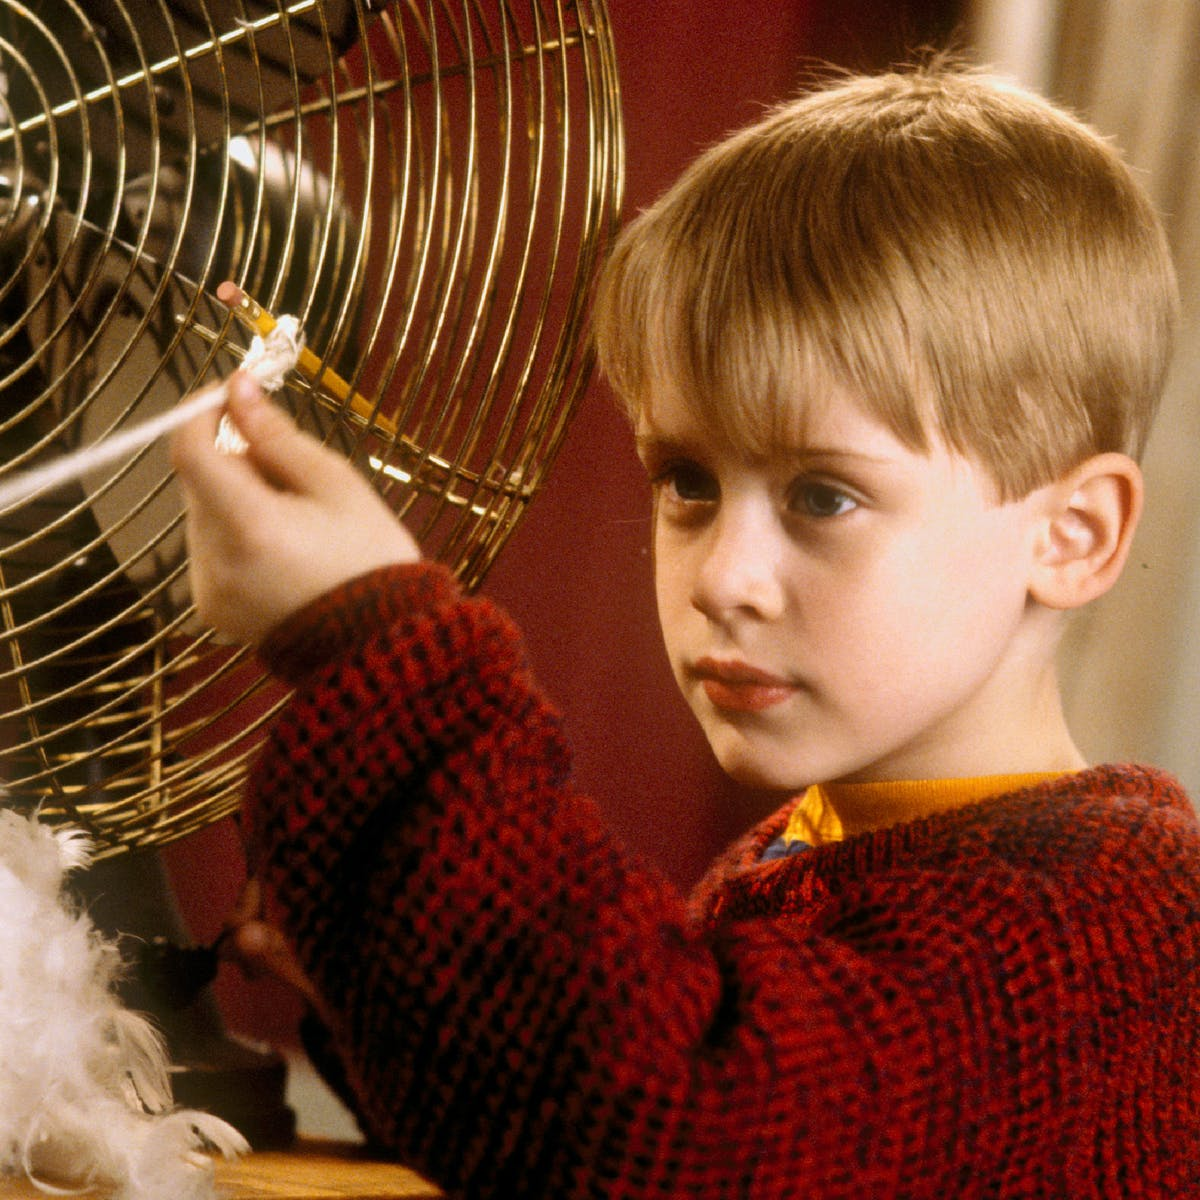 Home Alone at 30: how one case of parental neglect led to (hilariously) painful outcomes